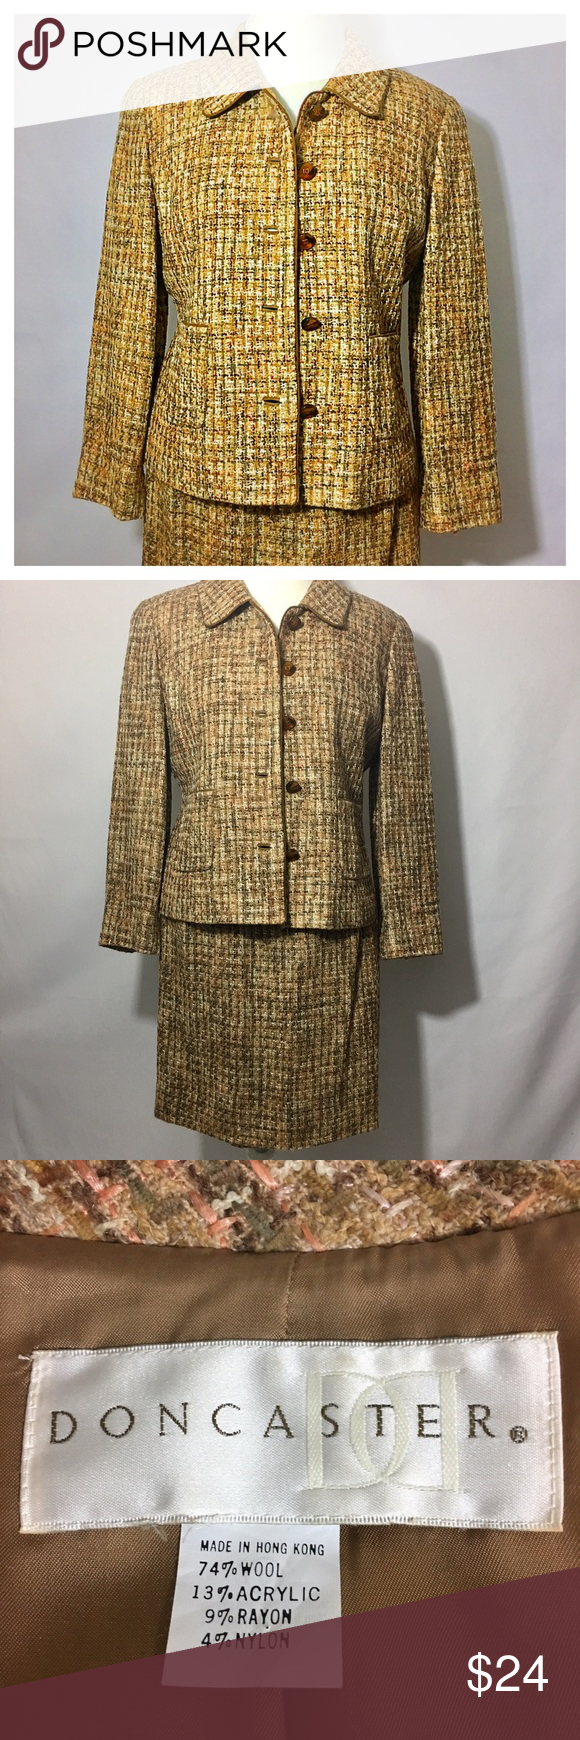 DONCASTER wool blazer and skirt bundle size 8 Wool